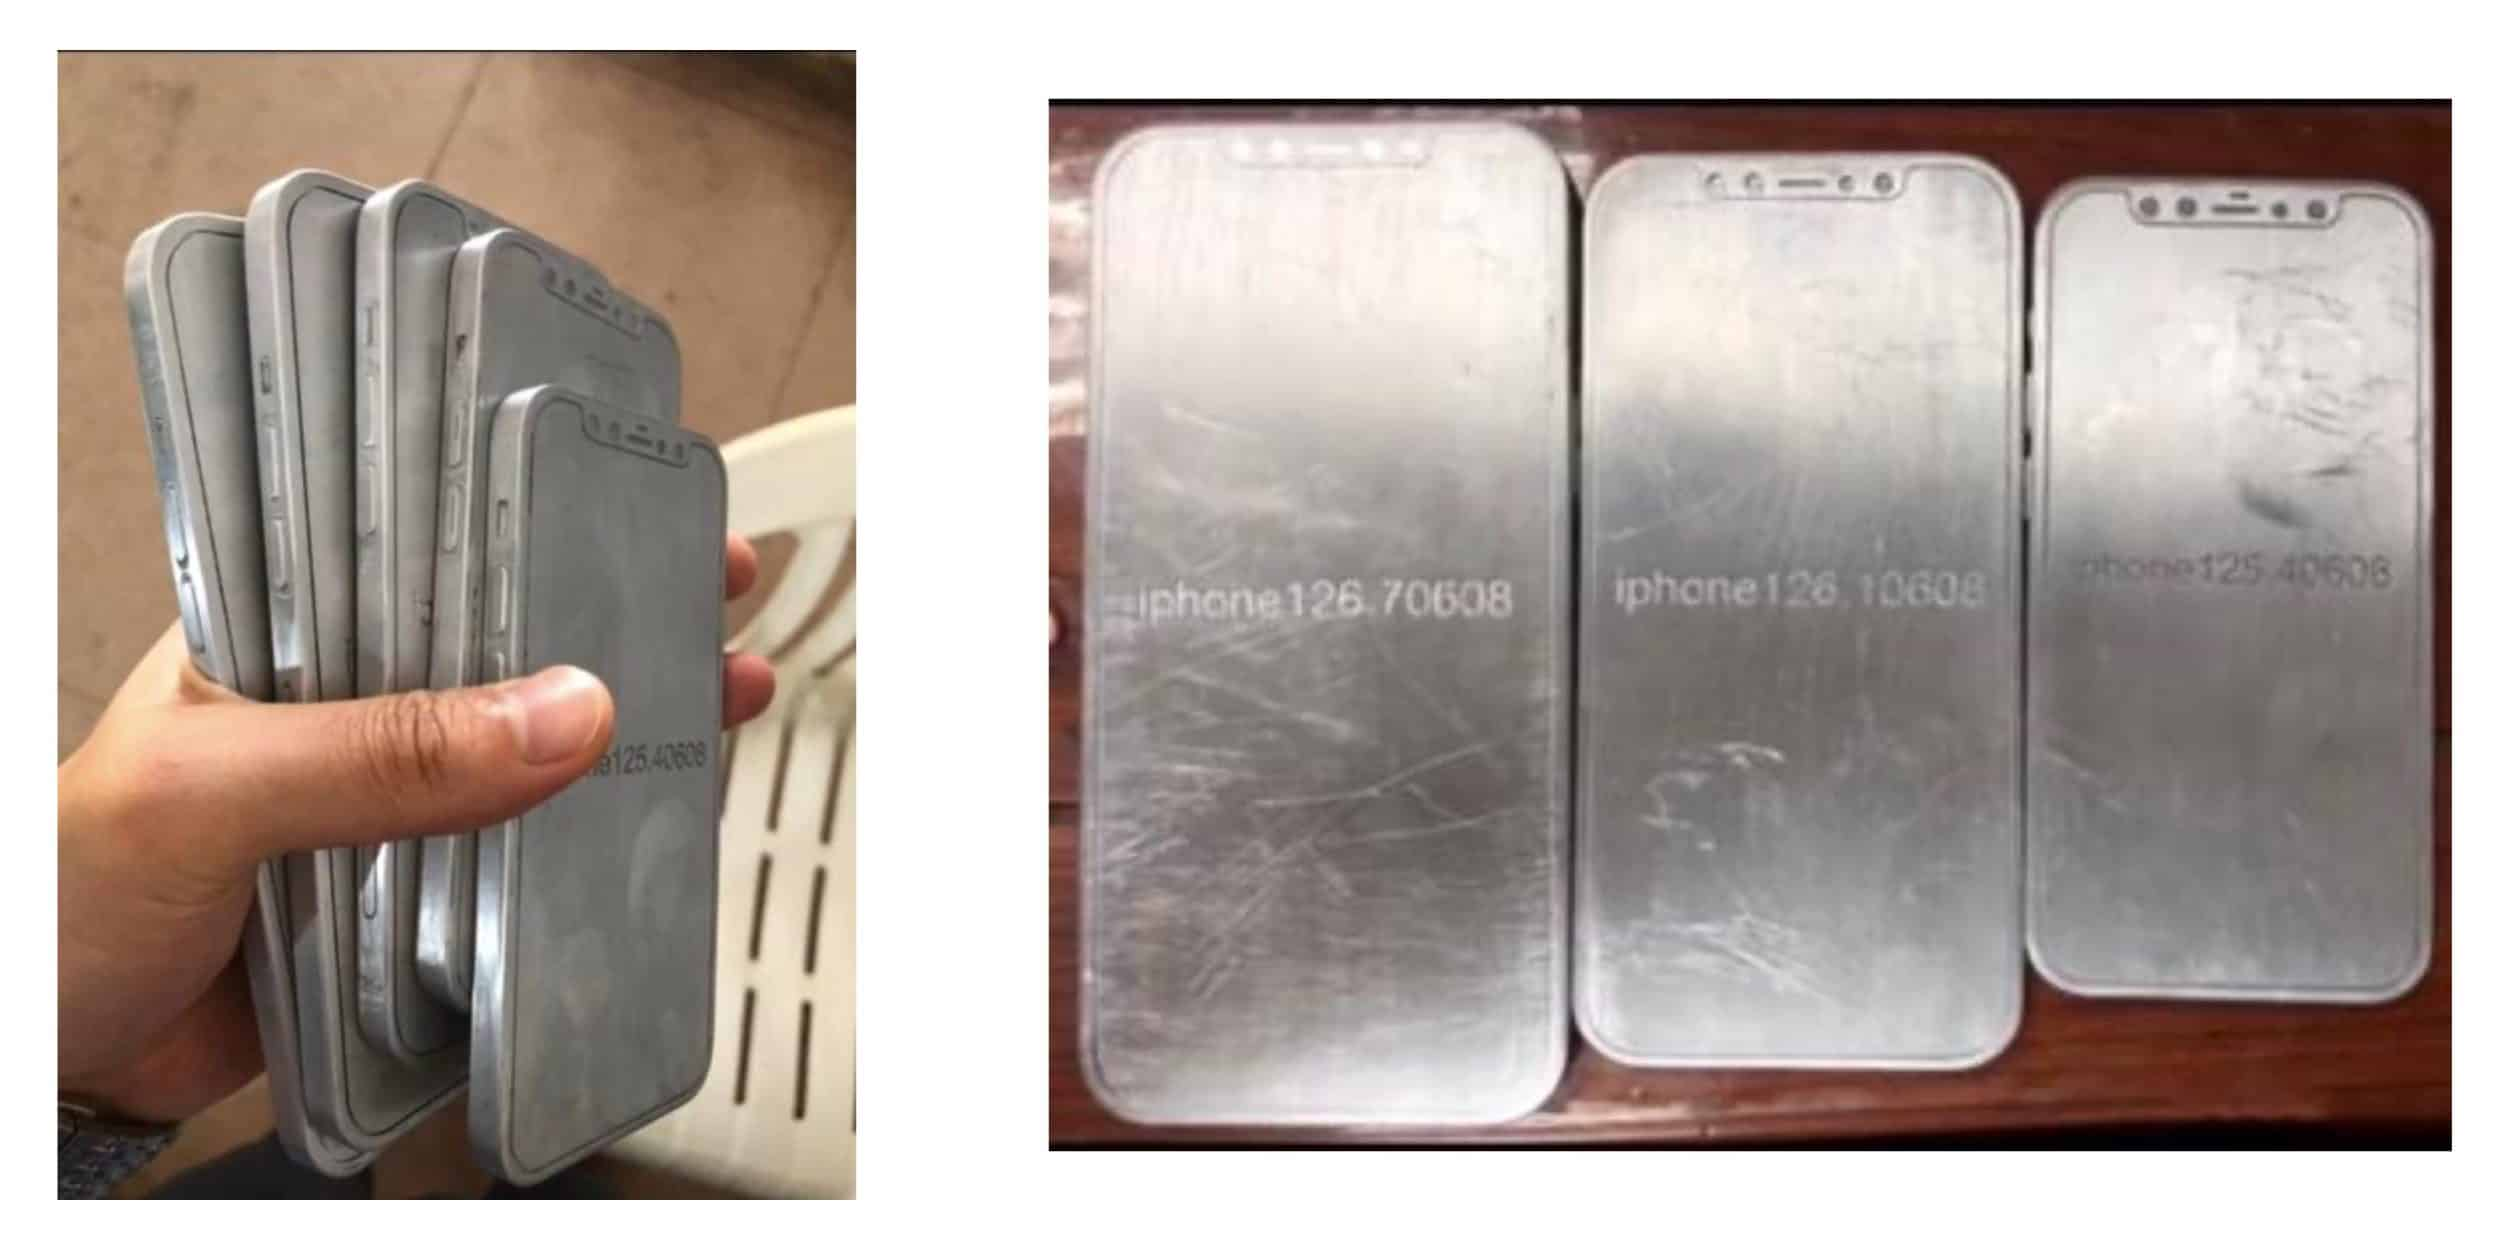 iPhone 12 molds